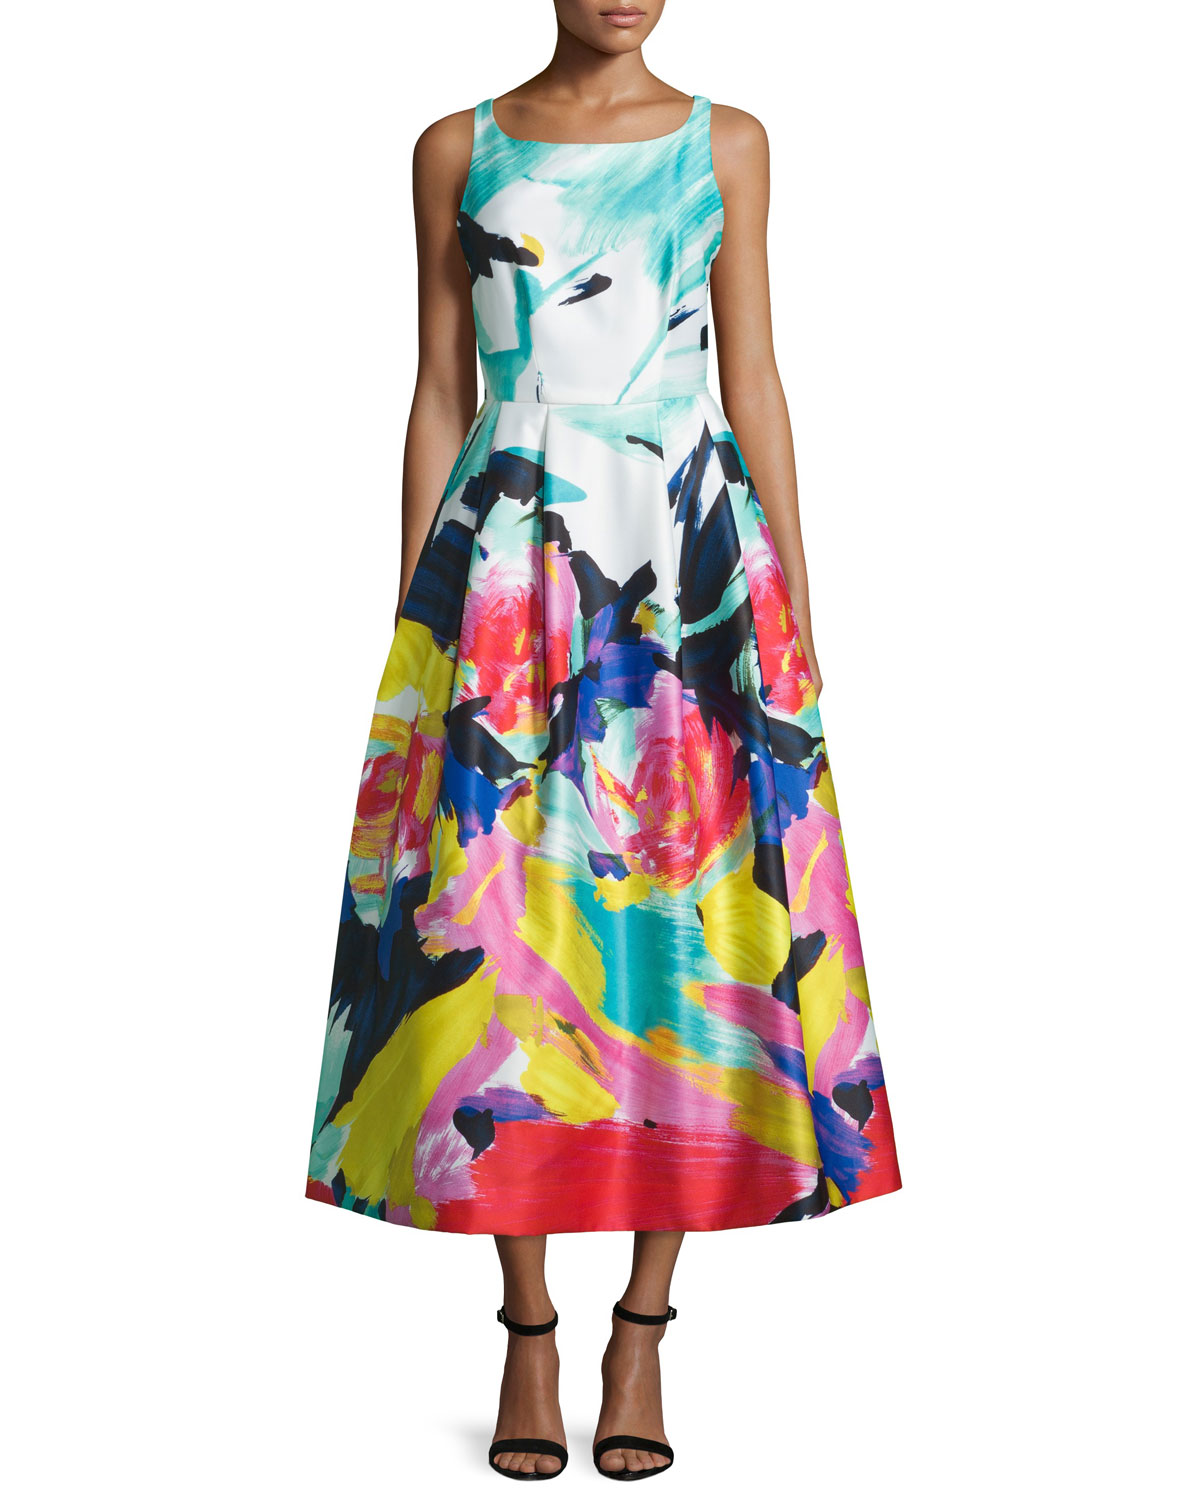 Sleeveless Floral-Print Midi Dress, Multi Colors, Size: 0 - Milly